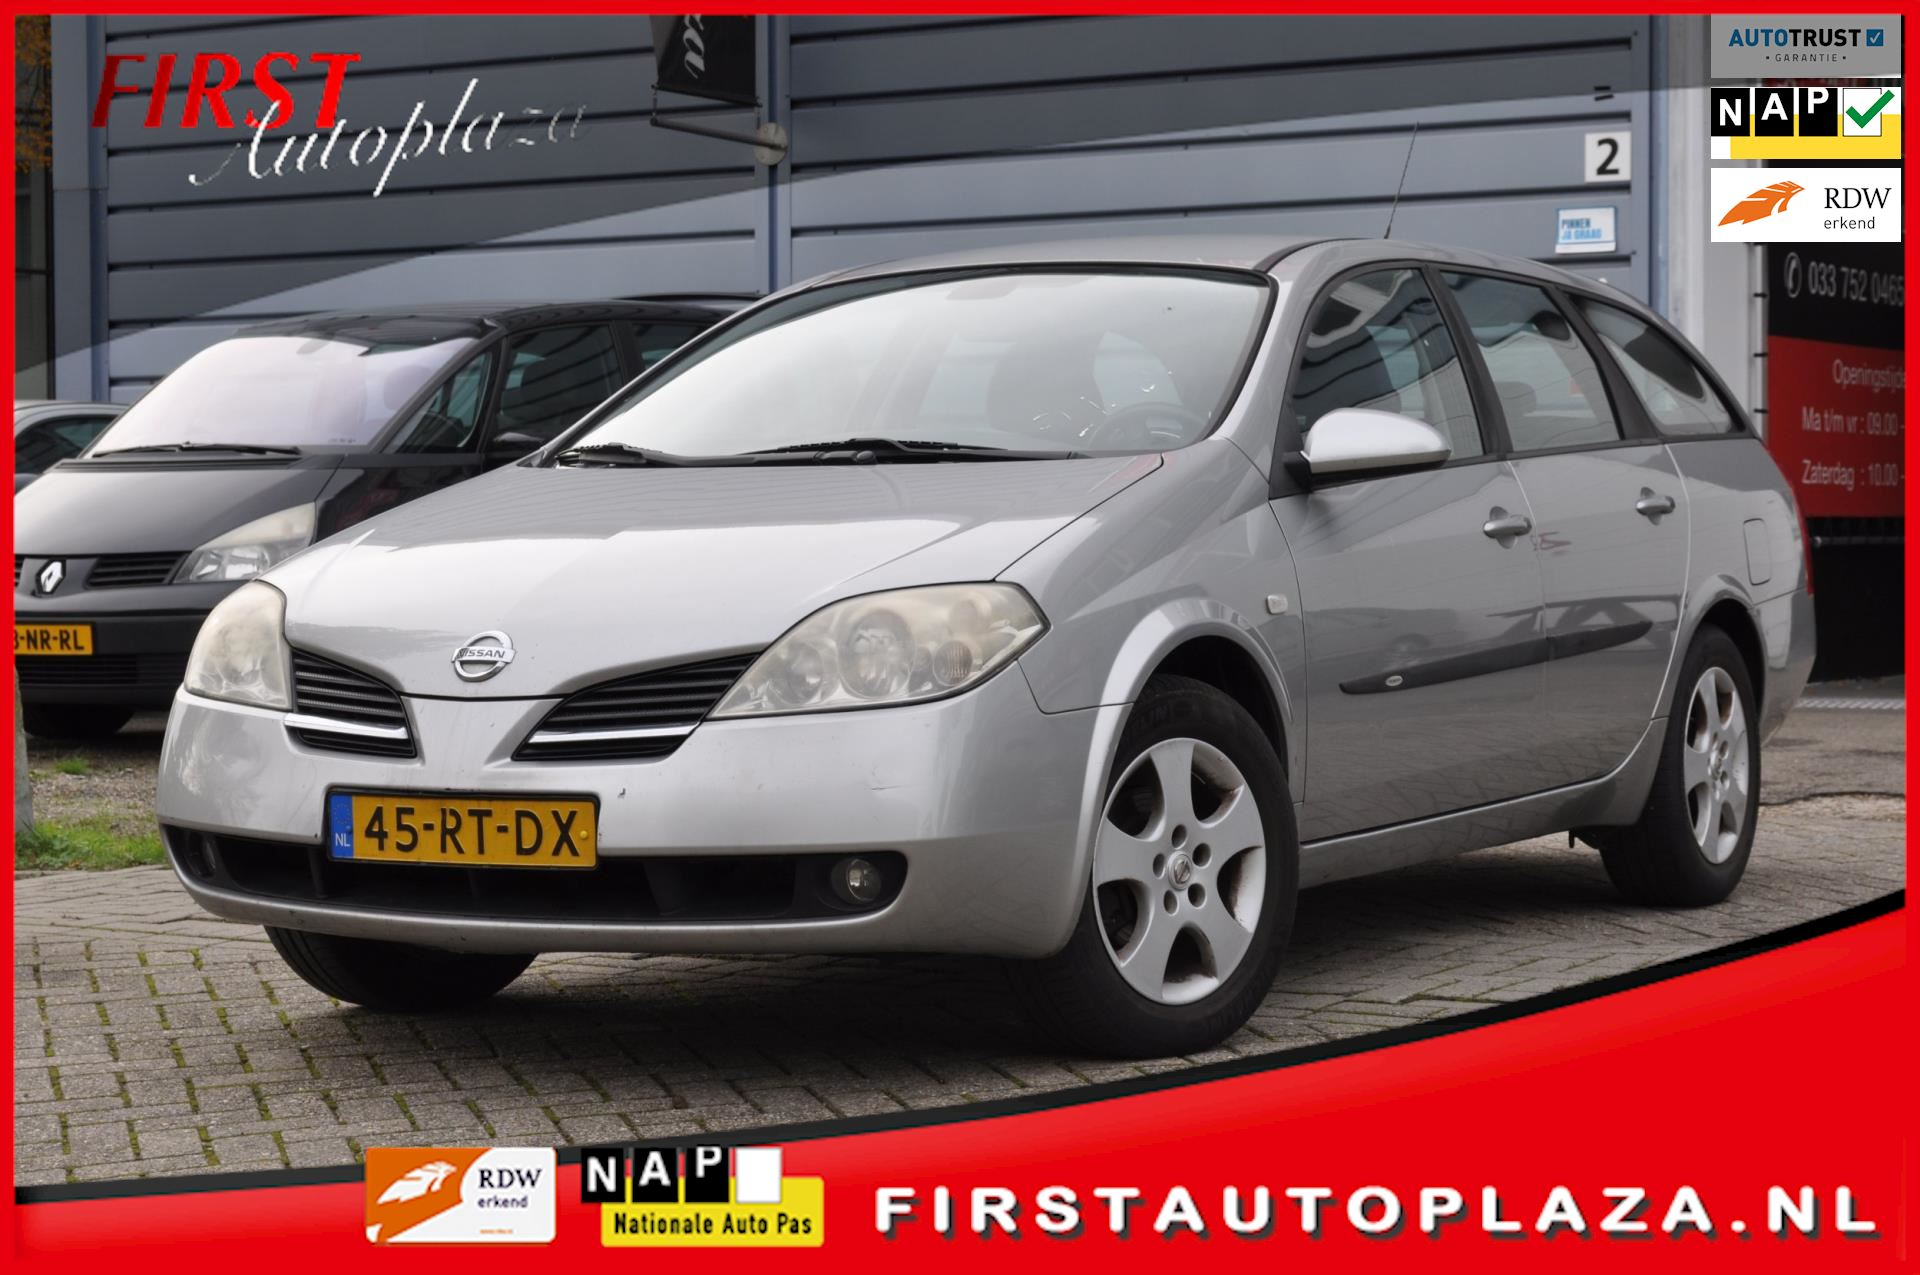 Nissan Primera Estate occasion - FIRST Autoplaza B.V.